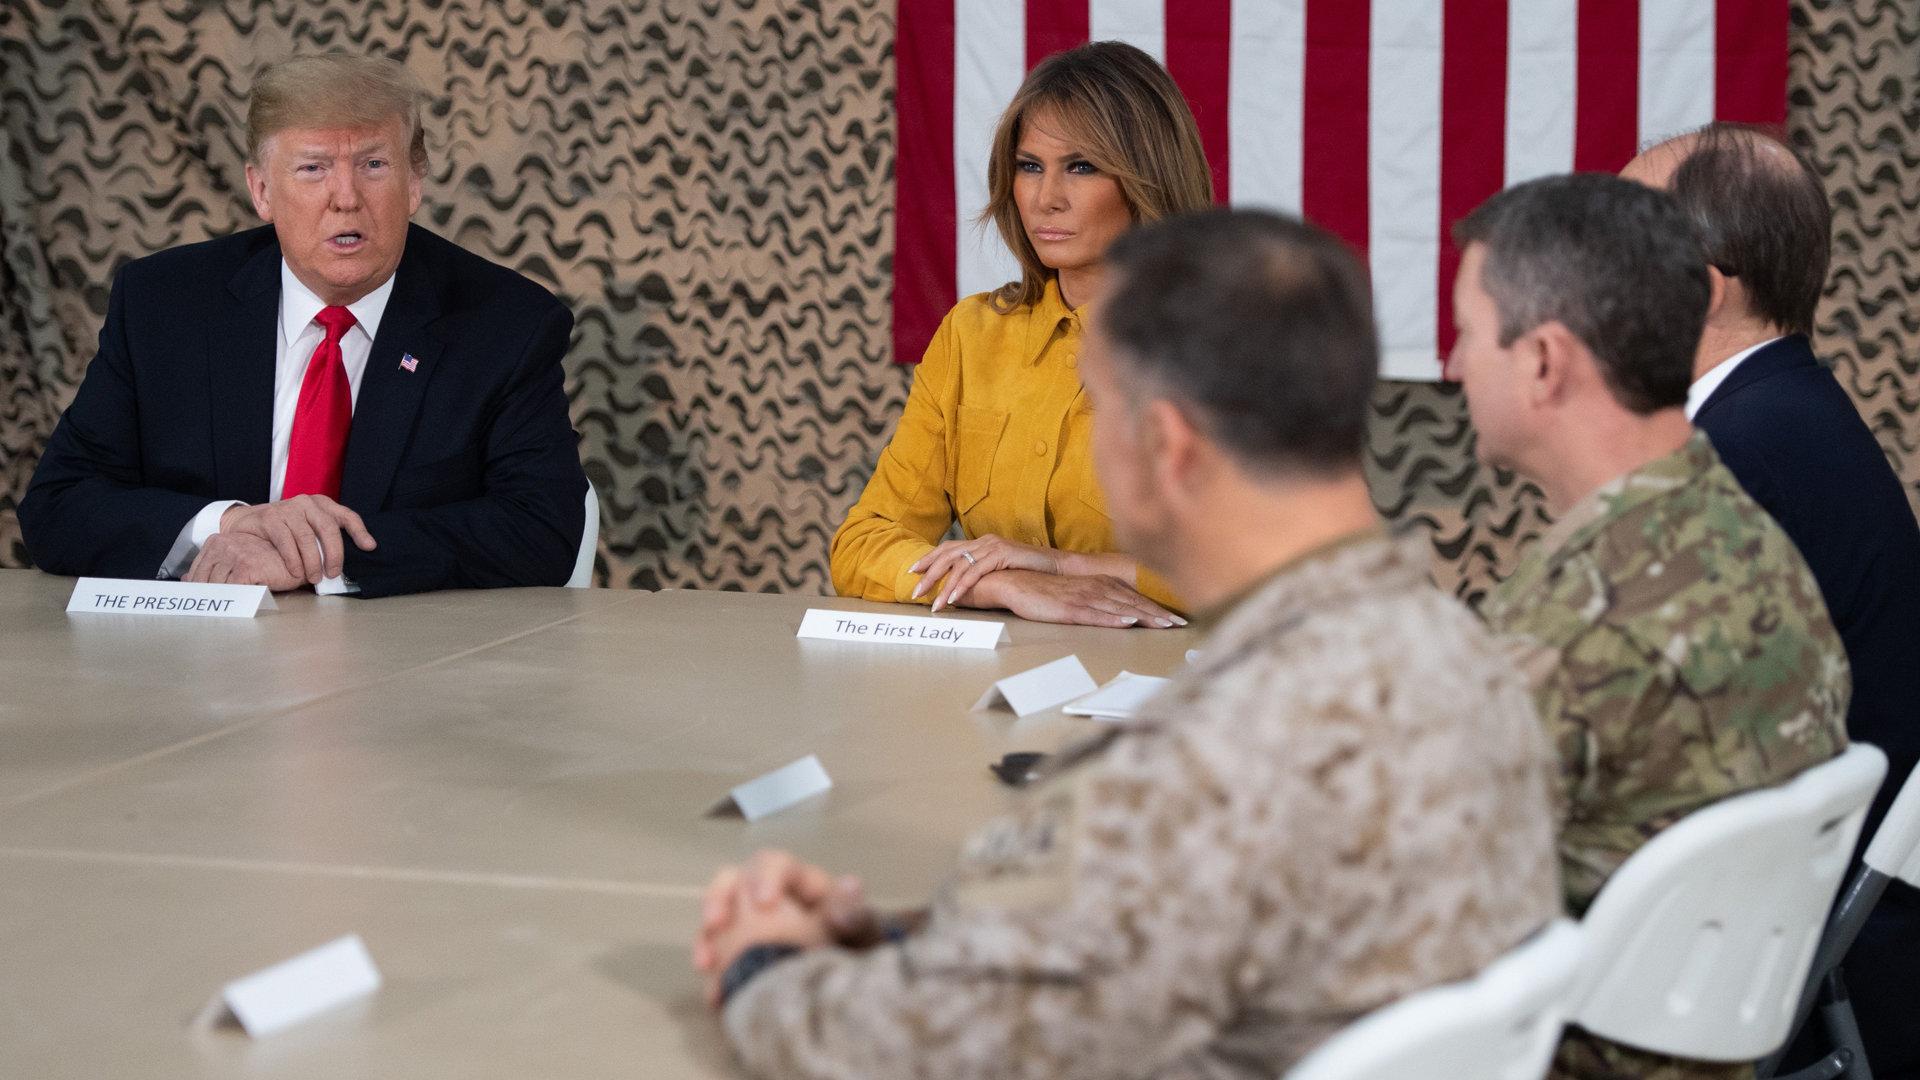 President Donald Trump and First Lady Melania Trump attend a military briefing during an unannounced trip to Al Asad Air Base in Iraq on Dec.26, 2018.(Credit: Saul Loeb/AFP/Getty Images)